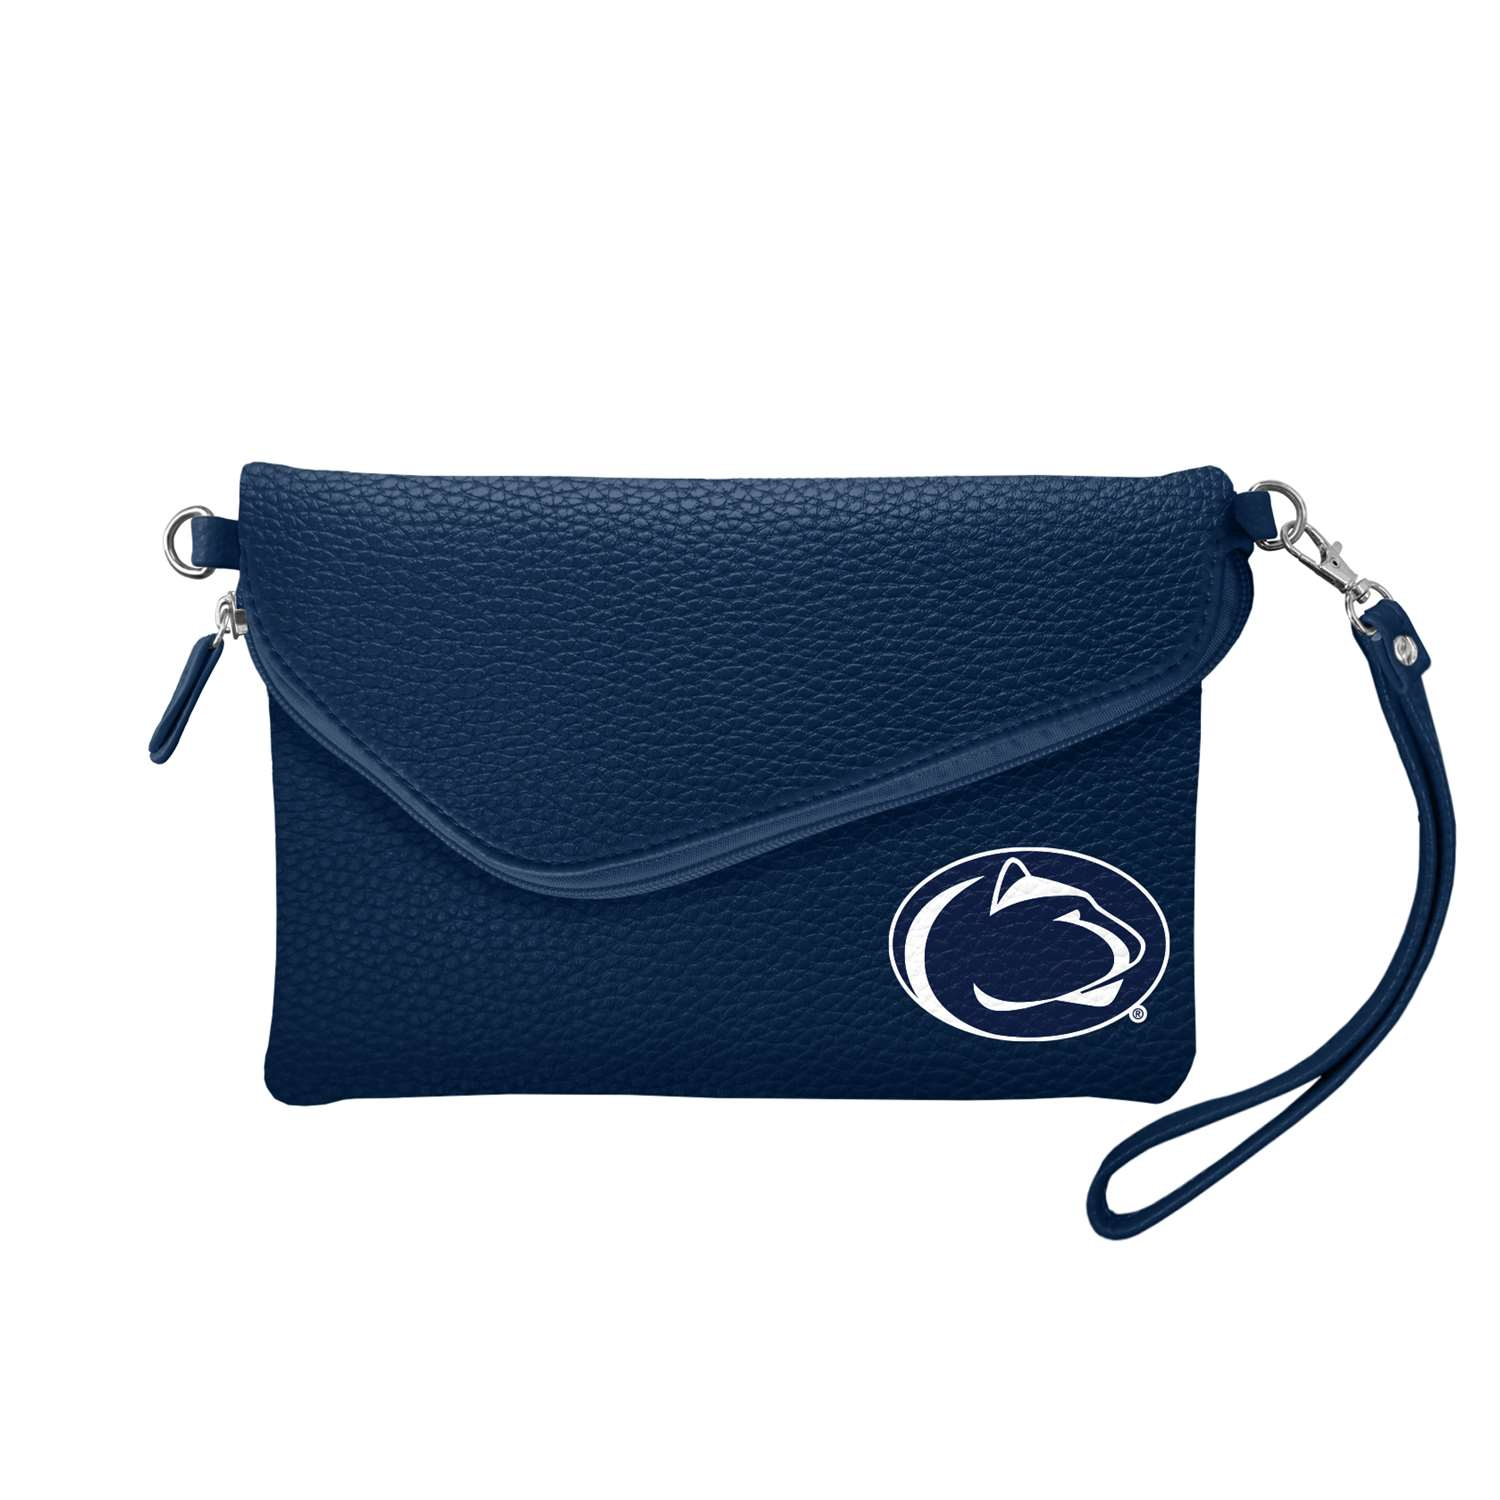 Ncaa College California University Of Pennsylvania Cup Vulcans Bath - 100432-psu-navy - Pennsylvania State University Fold Over Crossbody Pebble 100432-PSU-NAVY